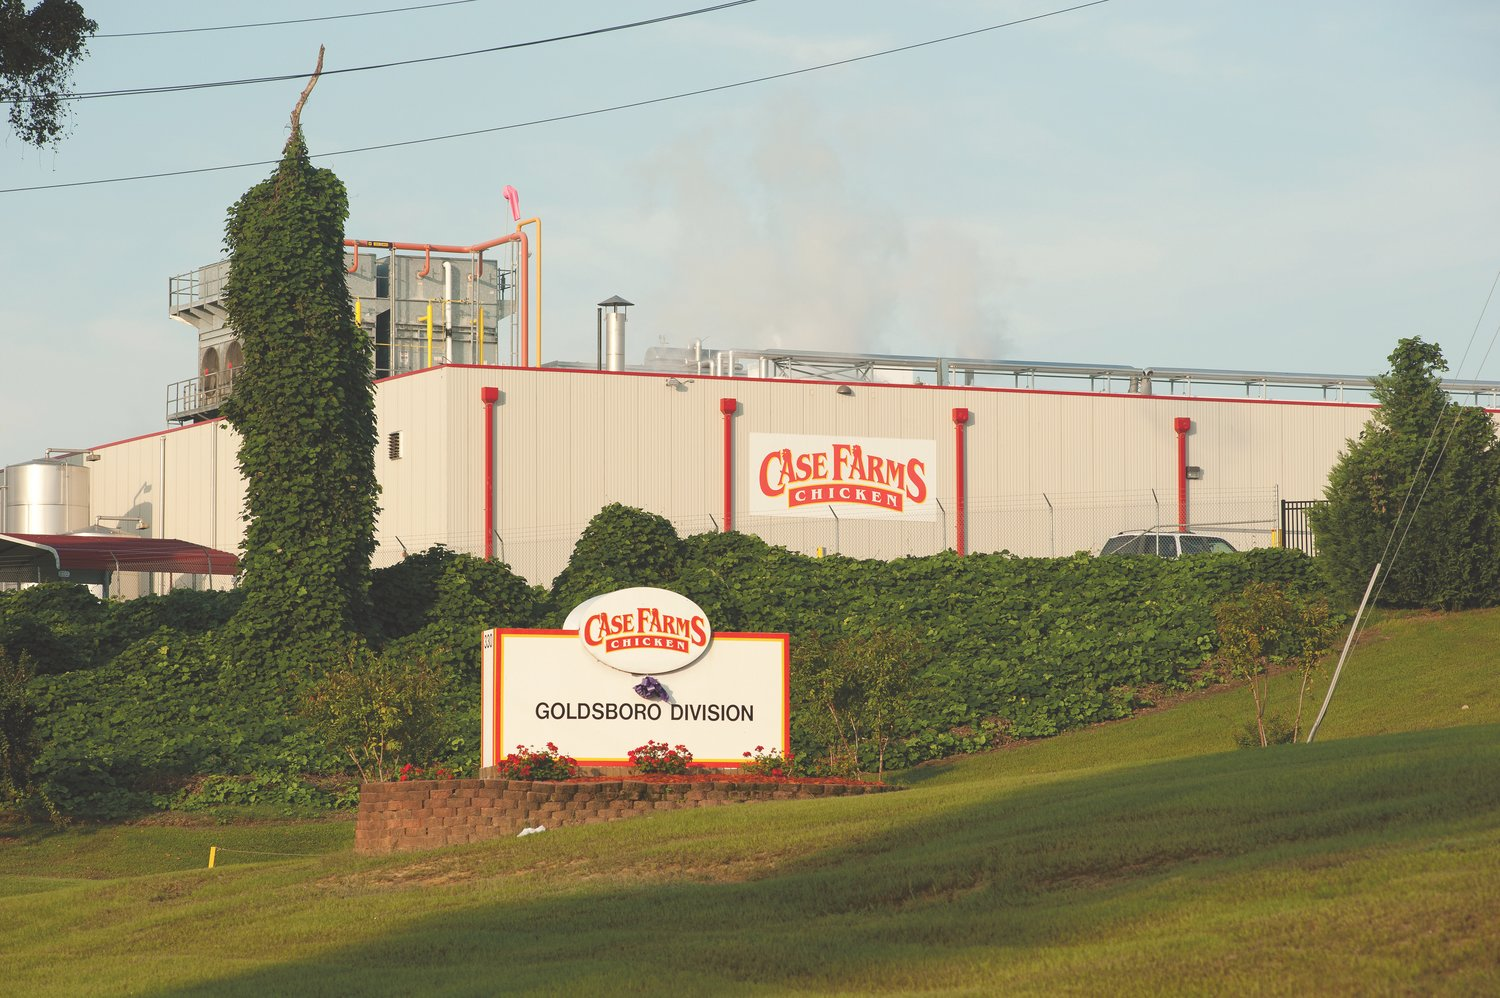 Case Farms of Goldsboro, seen here, was honored with the Gold Award from the North Carolina Department of Labor for the third straight year.